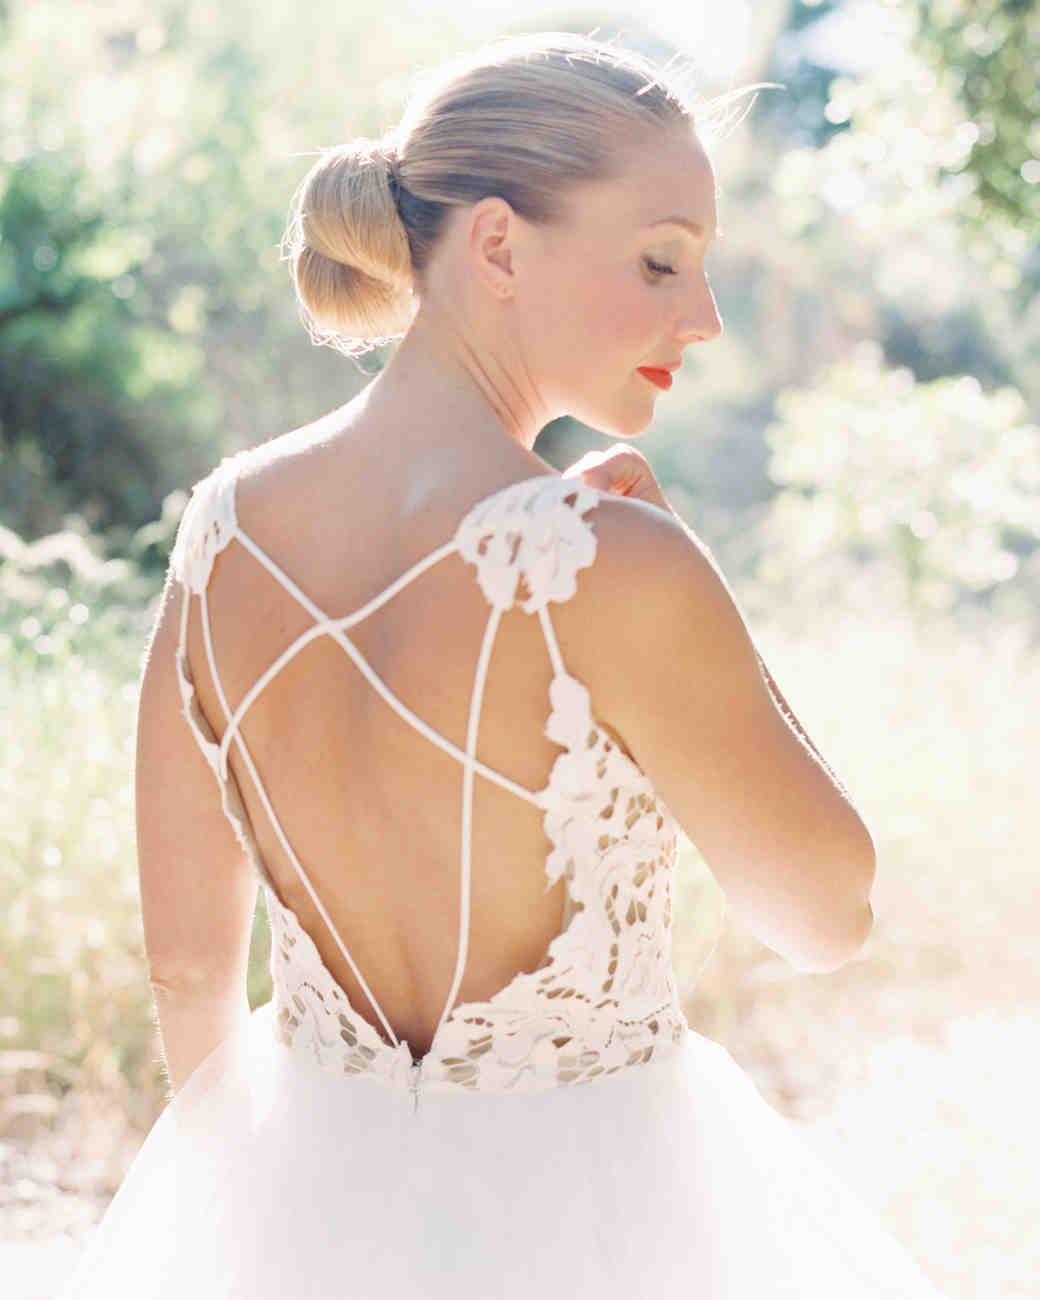 A Bride with a Wedding Dress That Features Lined Back Details